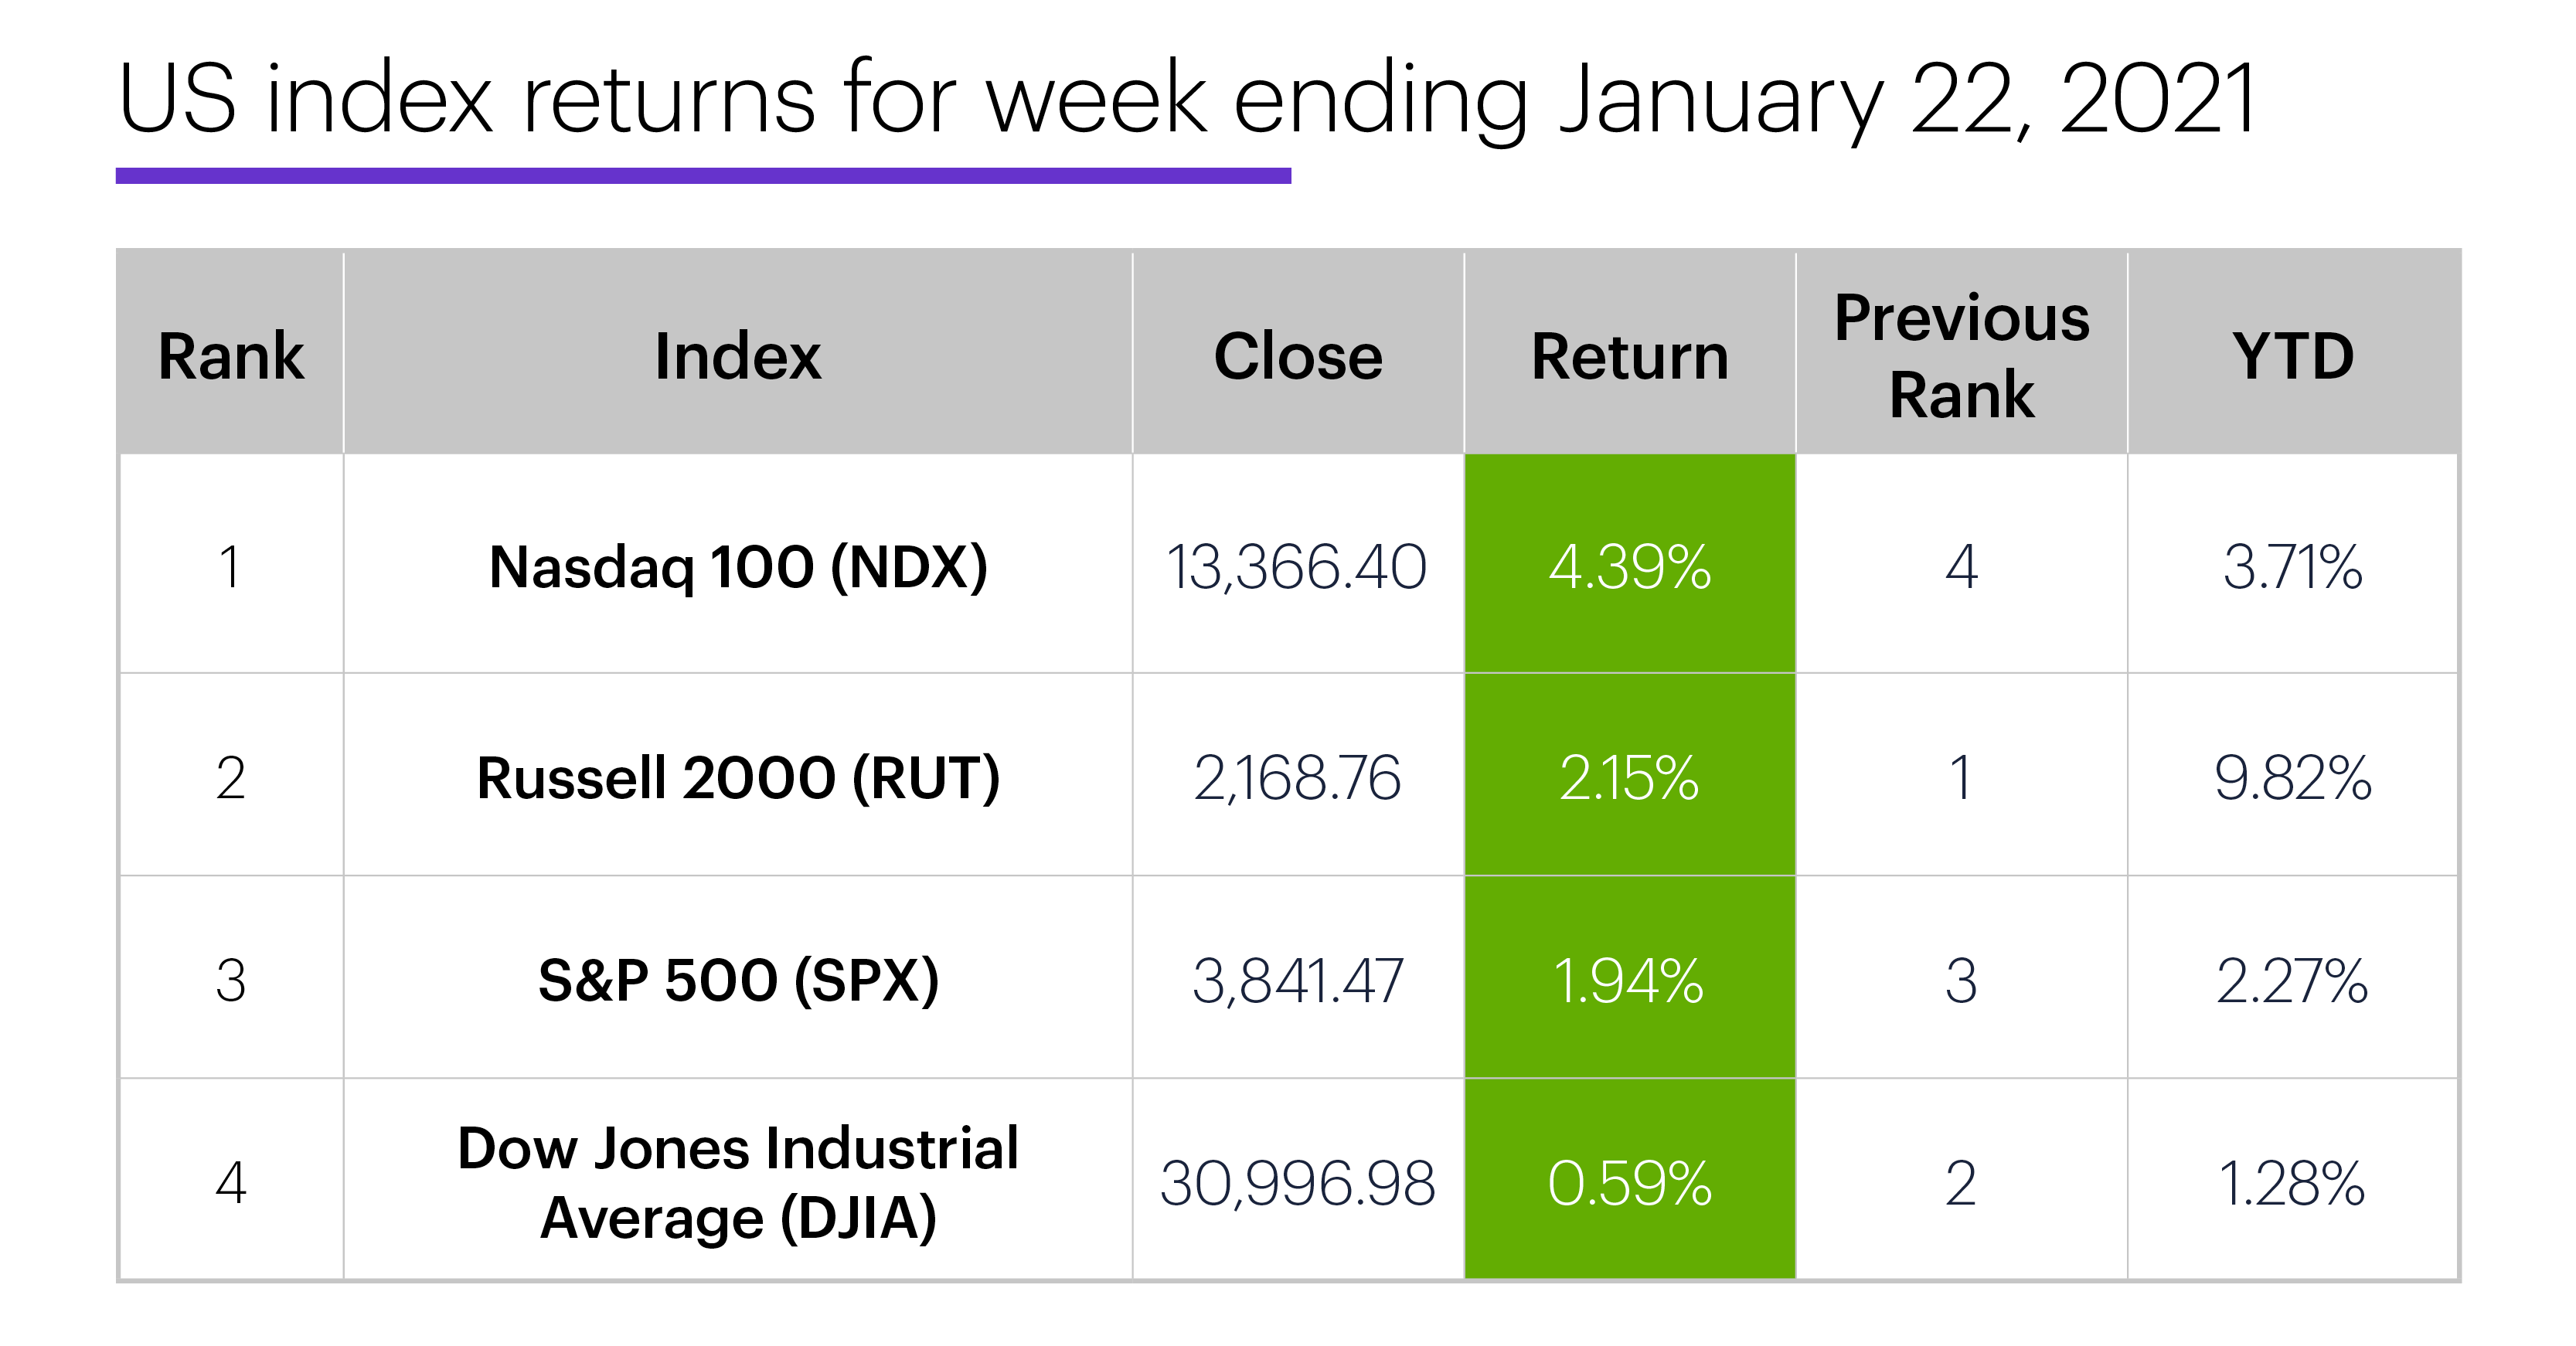 US stock index performance table for week ending 1/22/20. S&P 500 (SPX), Nasdaq 100 (NDX), Russell 2000 (RUT), Dow Jones Industrial Average (DJIA).